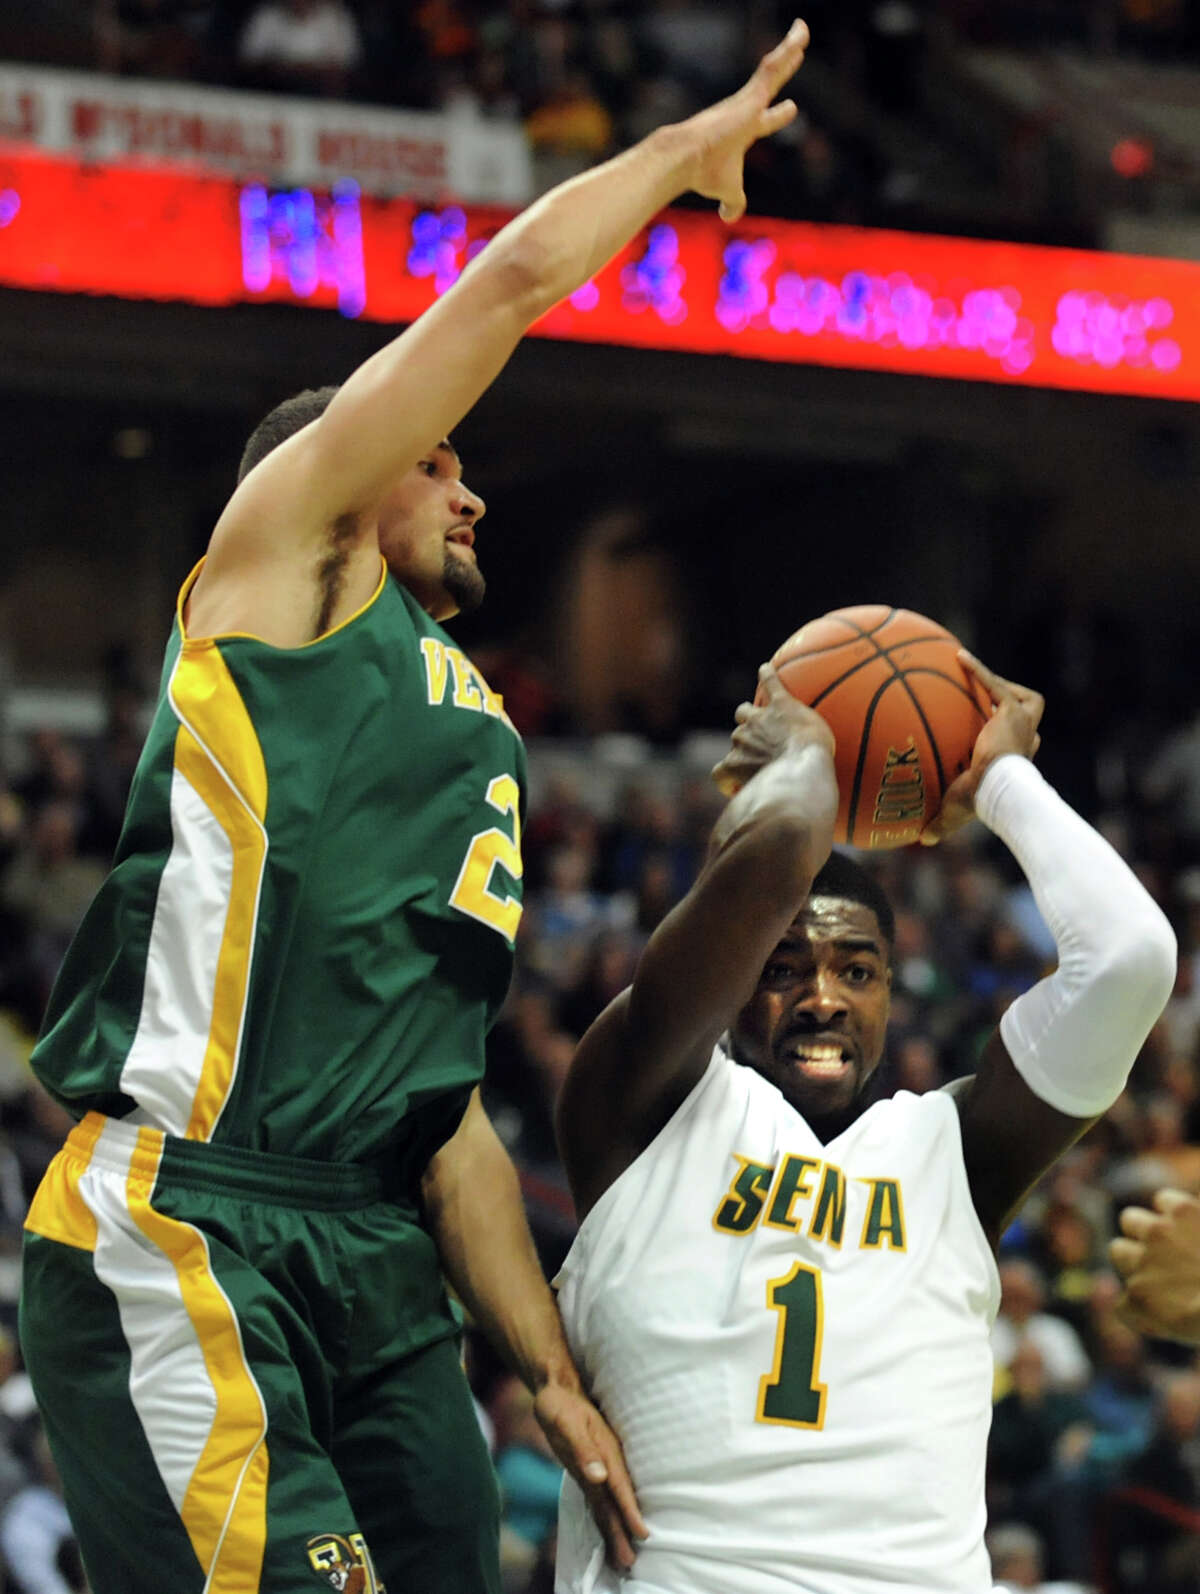 Siena's O.D. Anosike (1), right, gets the rebound as Vermont's Luke Apfield (2), left, defends during their basketball game on Friday, Nov. 9, 2012, at Times Union Center in Albany, N.Y. (Cindy Schultz / Times Union)